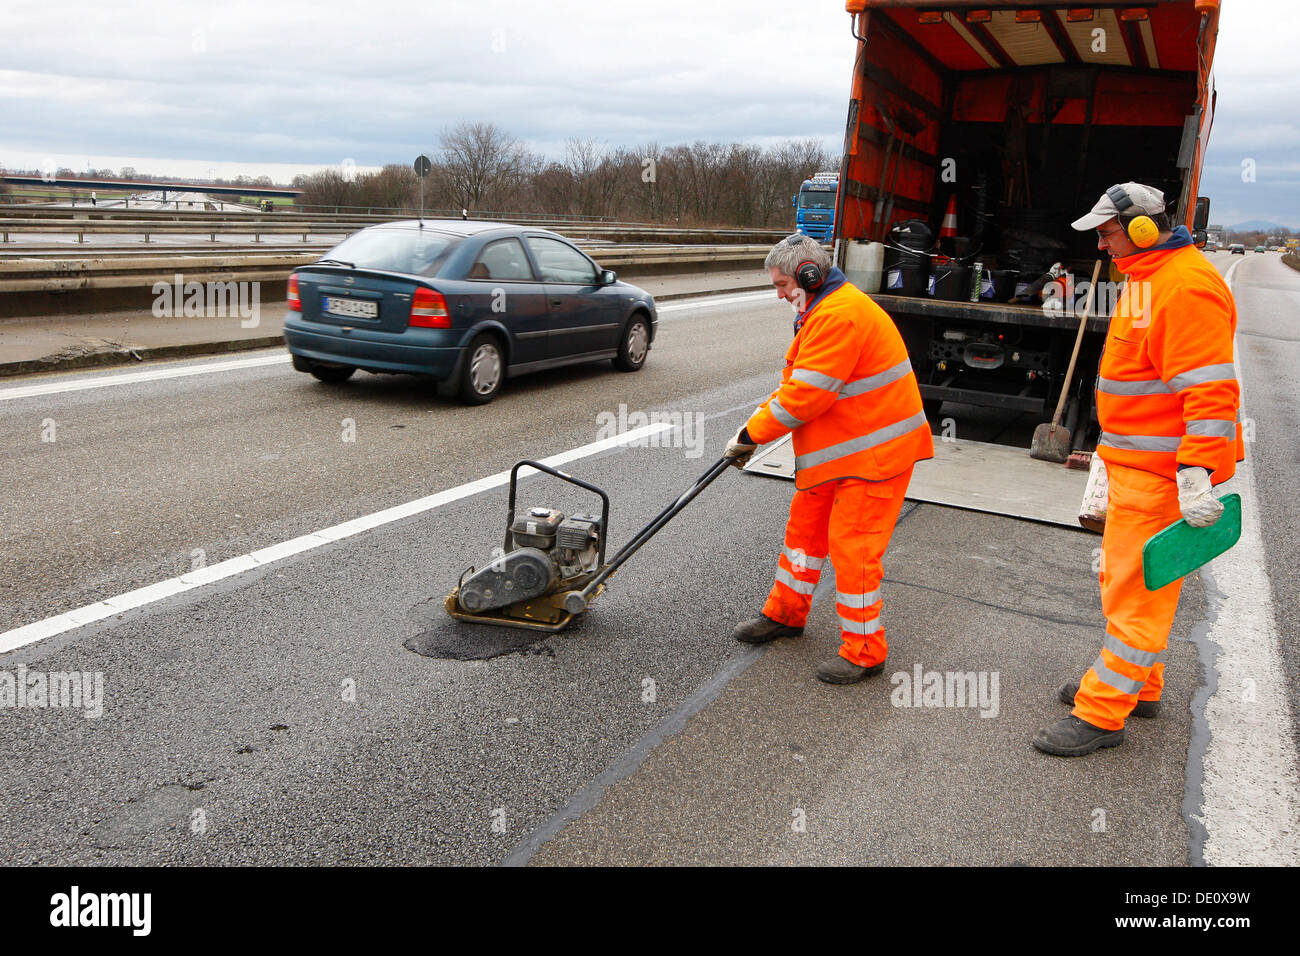 Workers doing road rehabilitation after frost on the A5 motorway near Heidelberg, Baden-Wuerttemberg - Stock Image